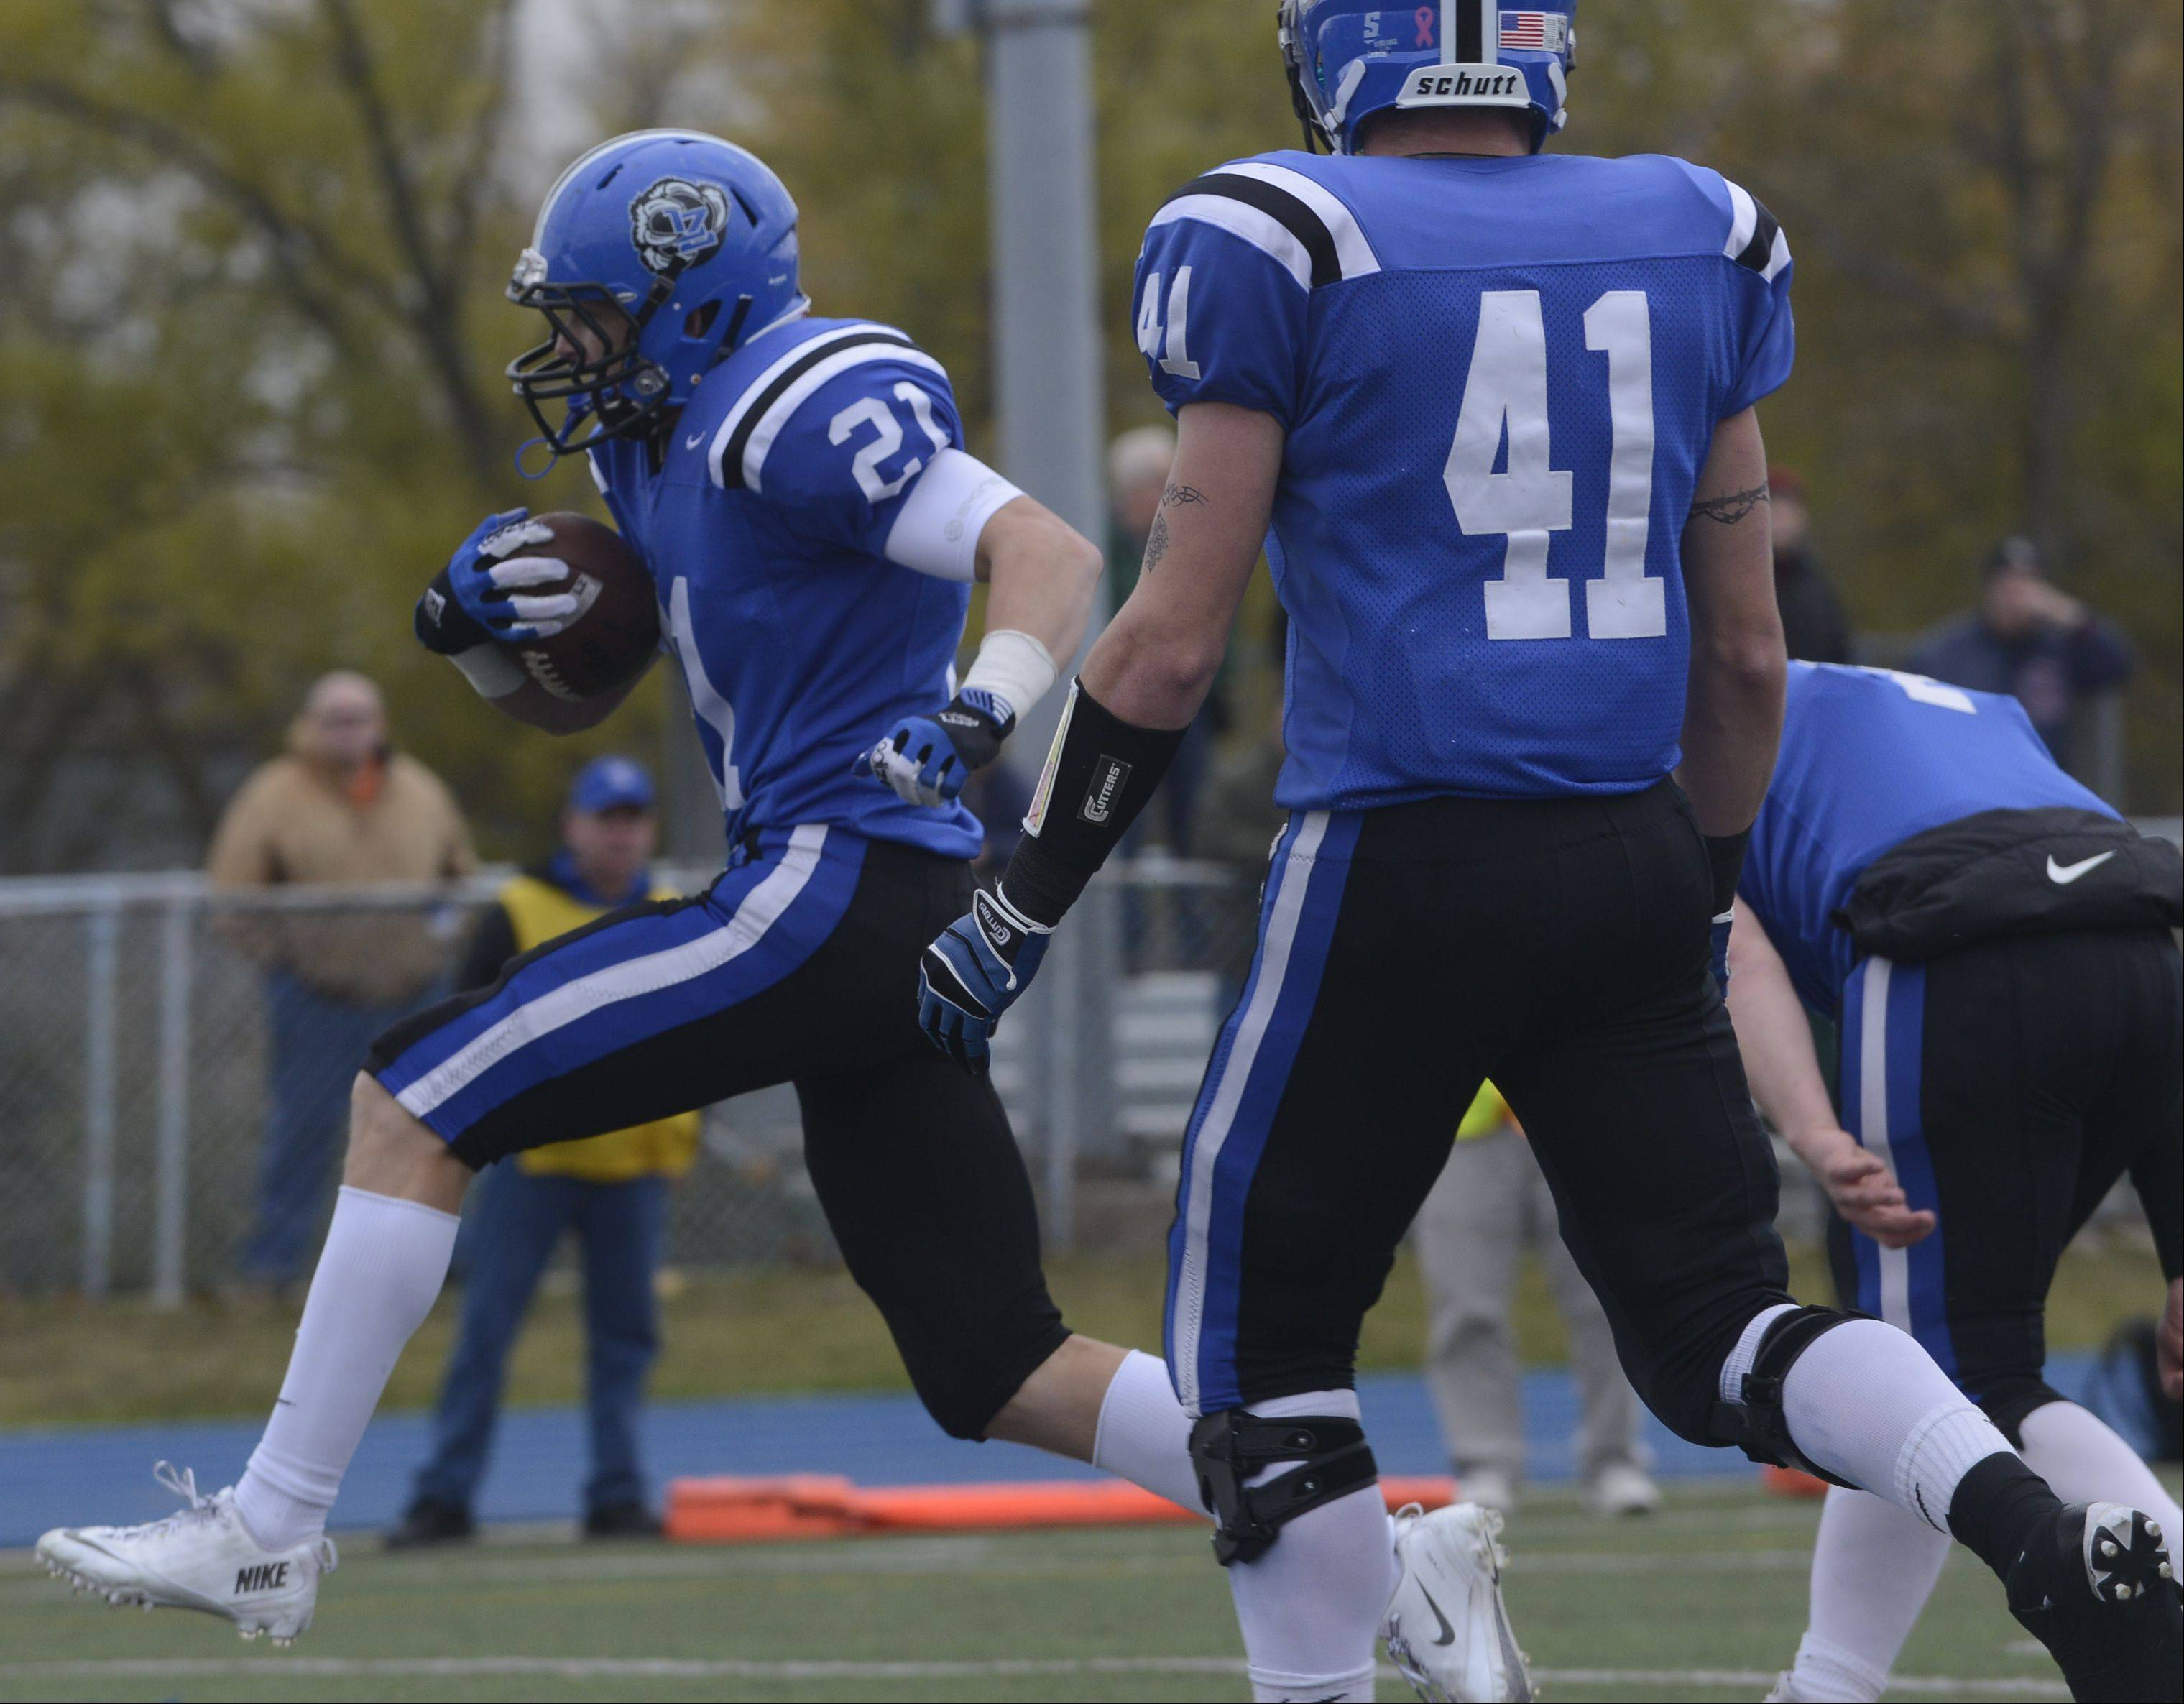 Playoffs -Round One- Photos from the Elk Grove at Lake Zurich football game on Saturday, Nov. 2.